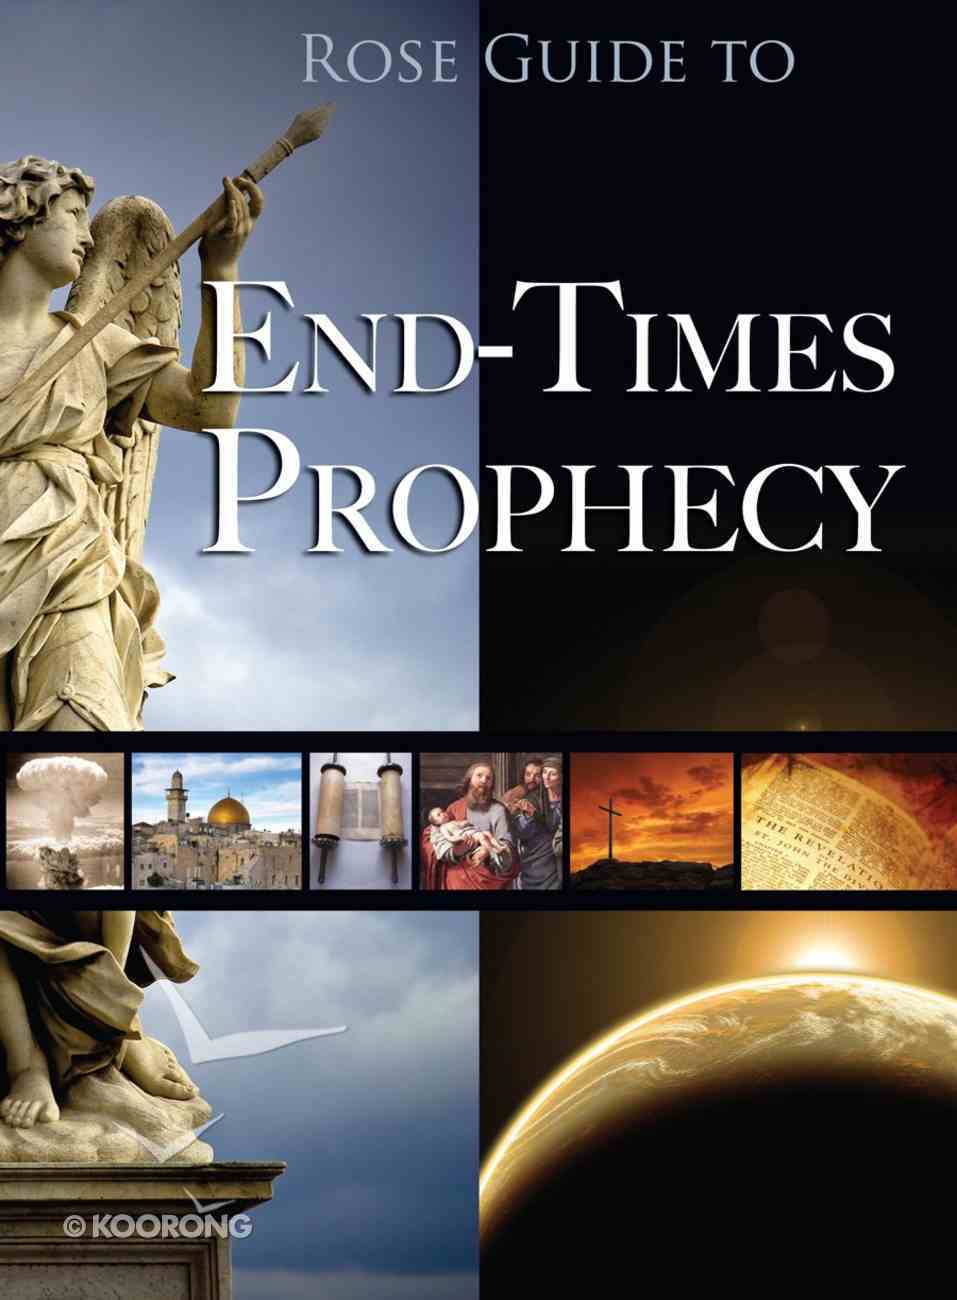 End-Times Prophecy (Rose Guide Series) eBook